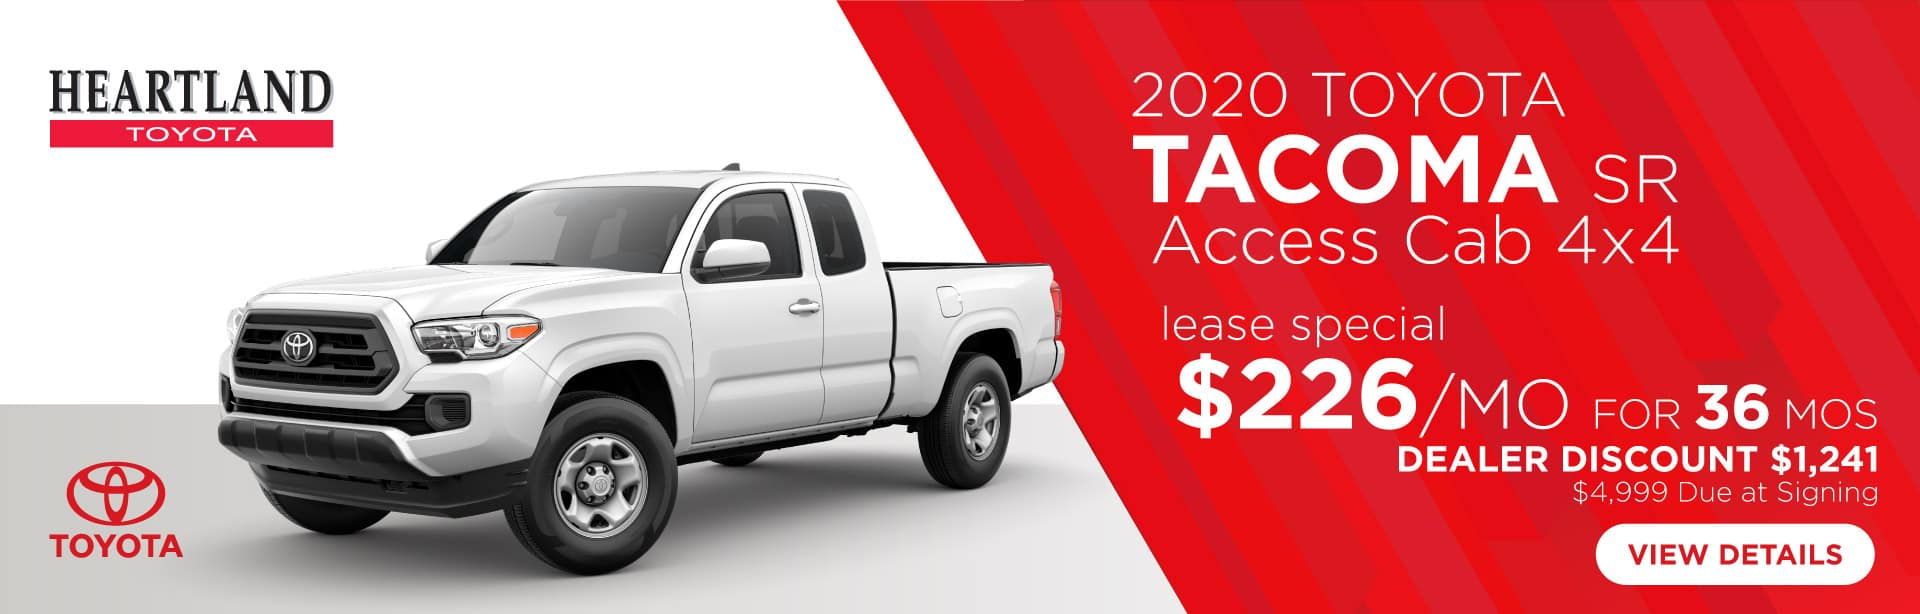 2020 Toyota Tacoma SR Access Cab 4x4 (featured vehicle)  $226/mo for 36 months* Dealer Discount: $1,241 $4,999 Due at Signing    *Offer valid on 2020 Toyota Tacoma SR Access Cab 4x4.$226 per month for 36 months. Dealer Discount: $1,241. Lease with $4,999 due at signing; includes a $695 acquisition fee. DEAL #416058. Valid on VIN: 5TFSX5EN8LX072839, 5TFSX5EN1LX072830, 5TFSZ5AN2LX221603. MSRP starting at $30,723. Lease is through TFS. Subject to credit approval. No Security deposit required. Excludes taxes, title, and fees. 36 monthly payments required. Not all lessees will qualify for lowest payment through participating lender. Residency restrictions apply. Lessee responsible for mileage over 10,000 miles per year at $0.15/mile per year. Option to purchase at lease end. A negotiable dealer documentary service fee of up to $150 may be added to the sale price or capitalized cost. Offer expires 2/3/2020.